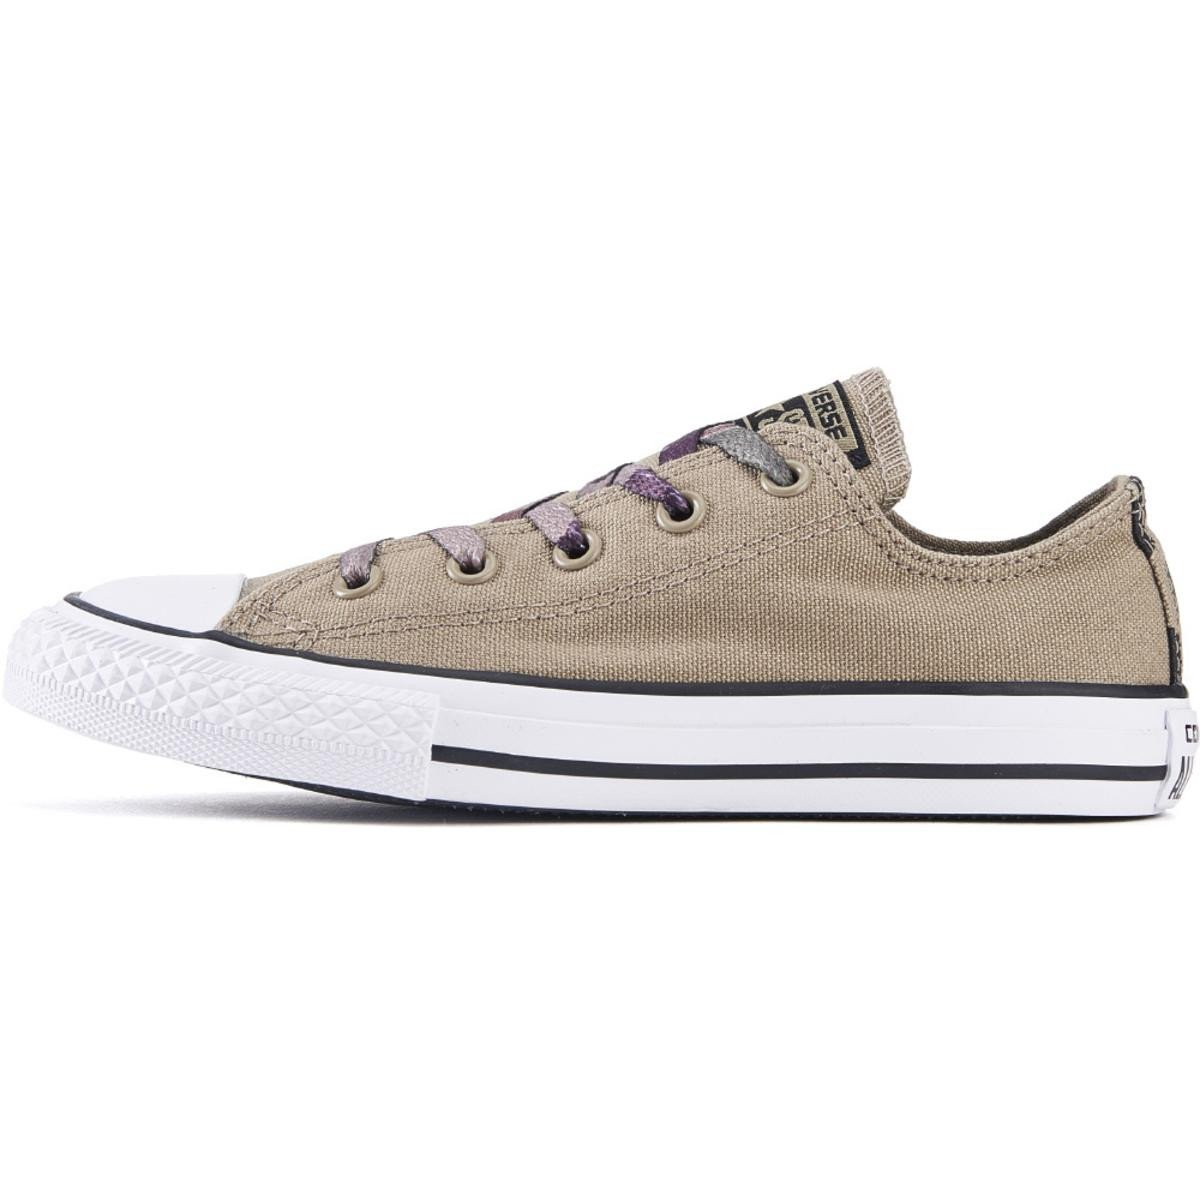 fb1f4187106e Converse for Kids  Chuck Taylor All Star Ox Sandy Camo Sneakers